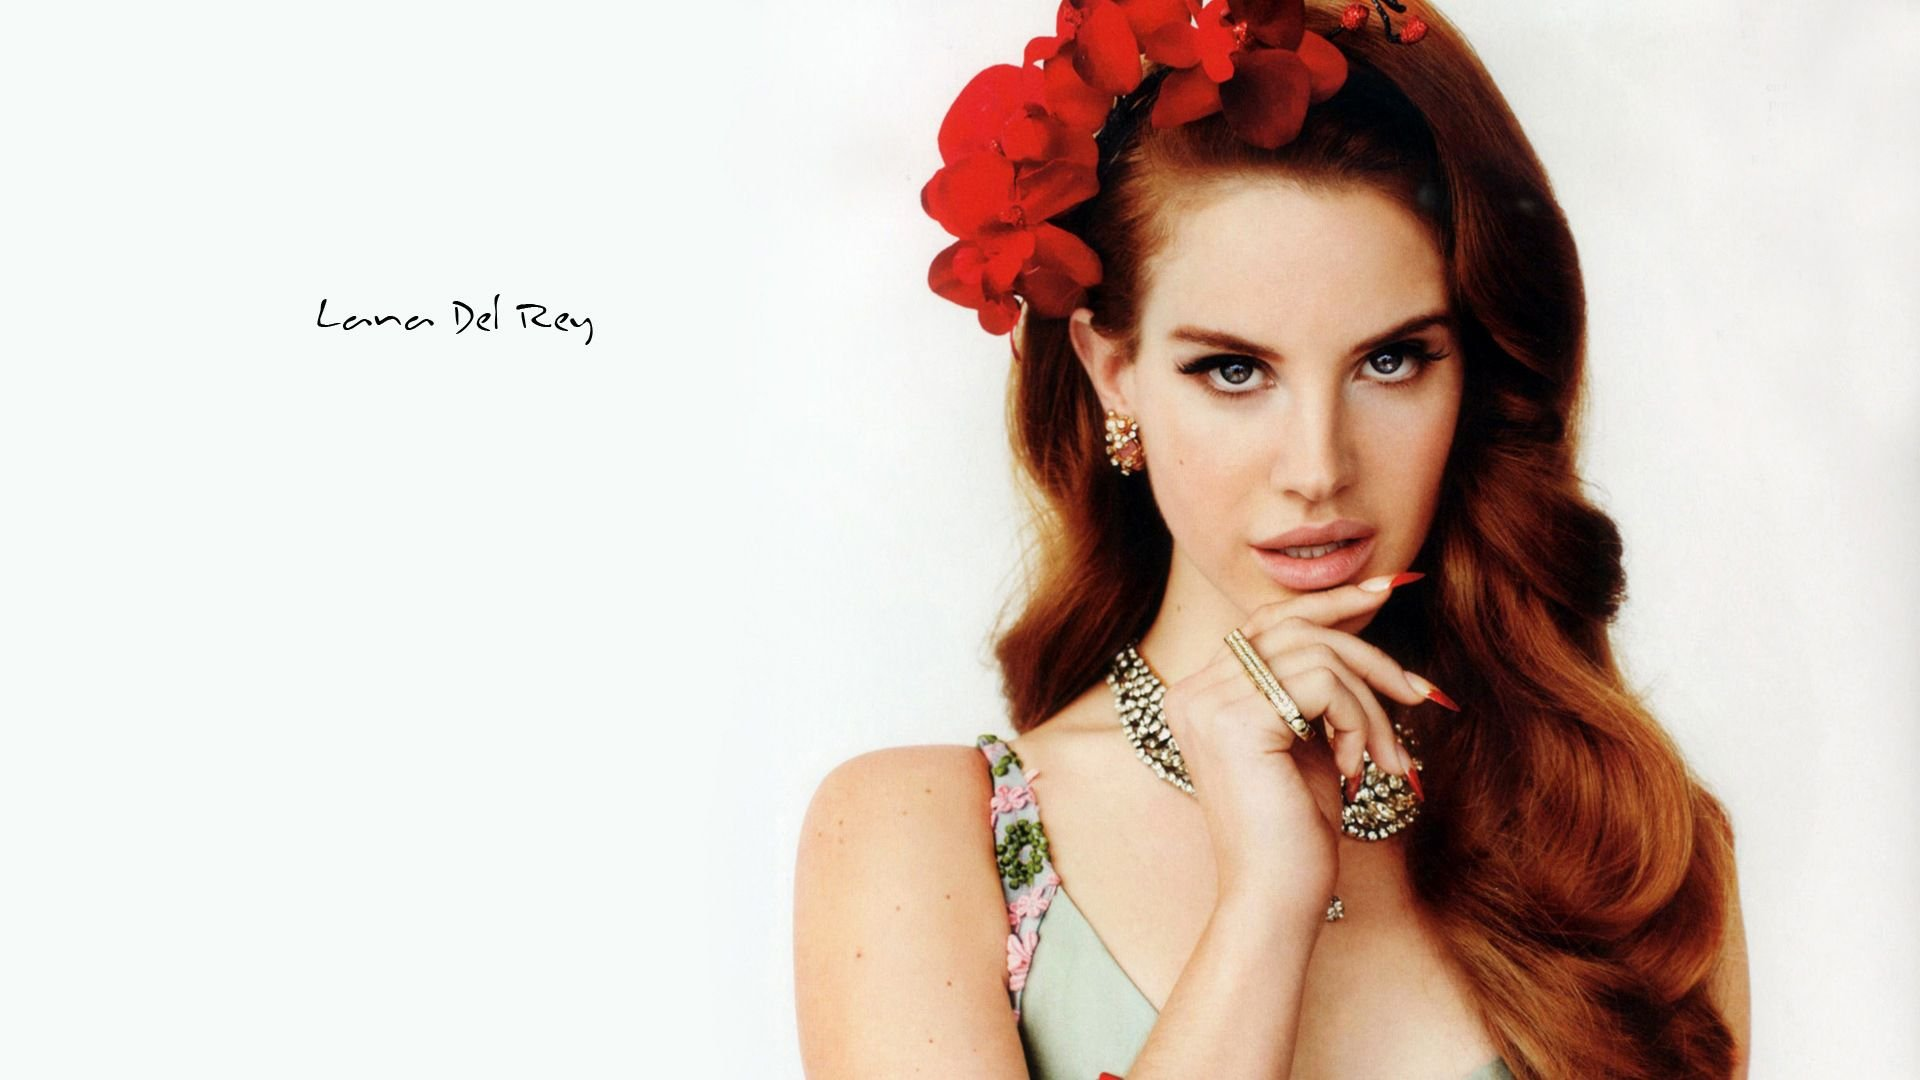 Free Download Lana Del Rey Full Hd Background Picture Image